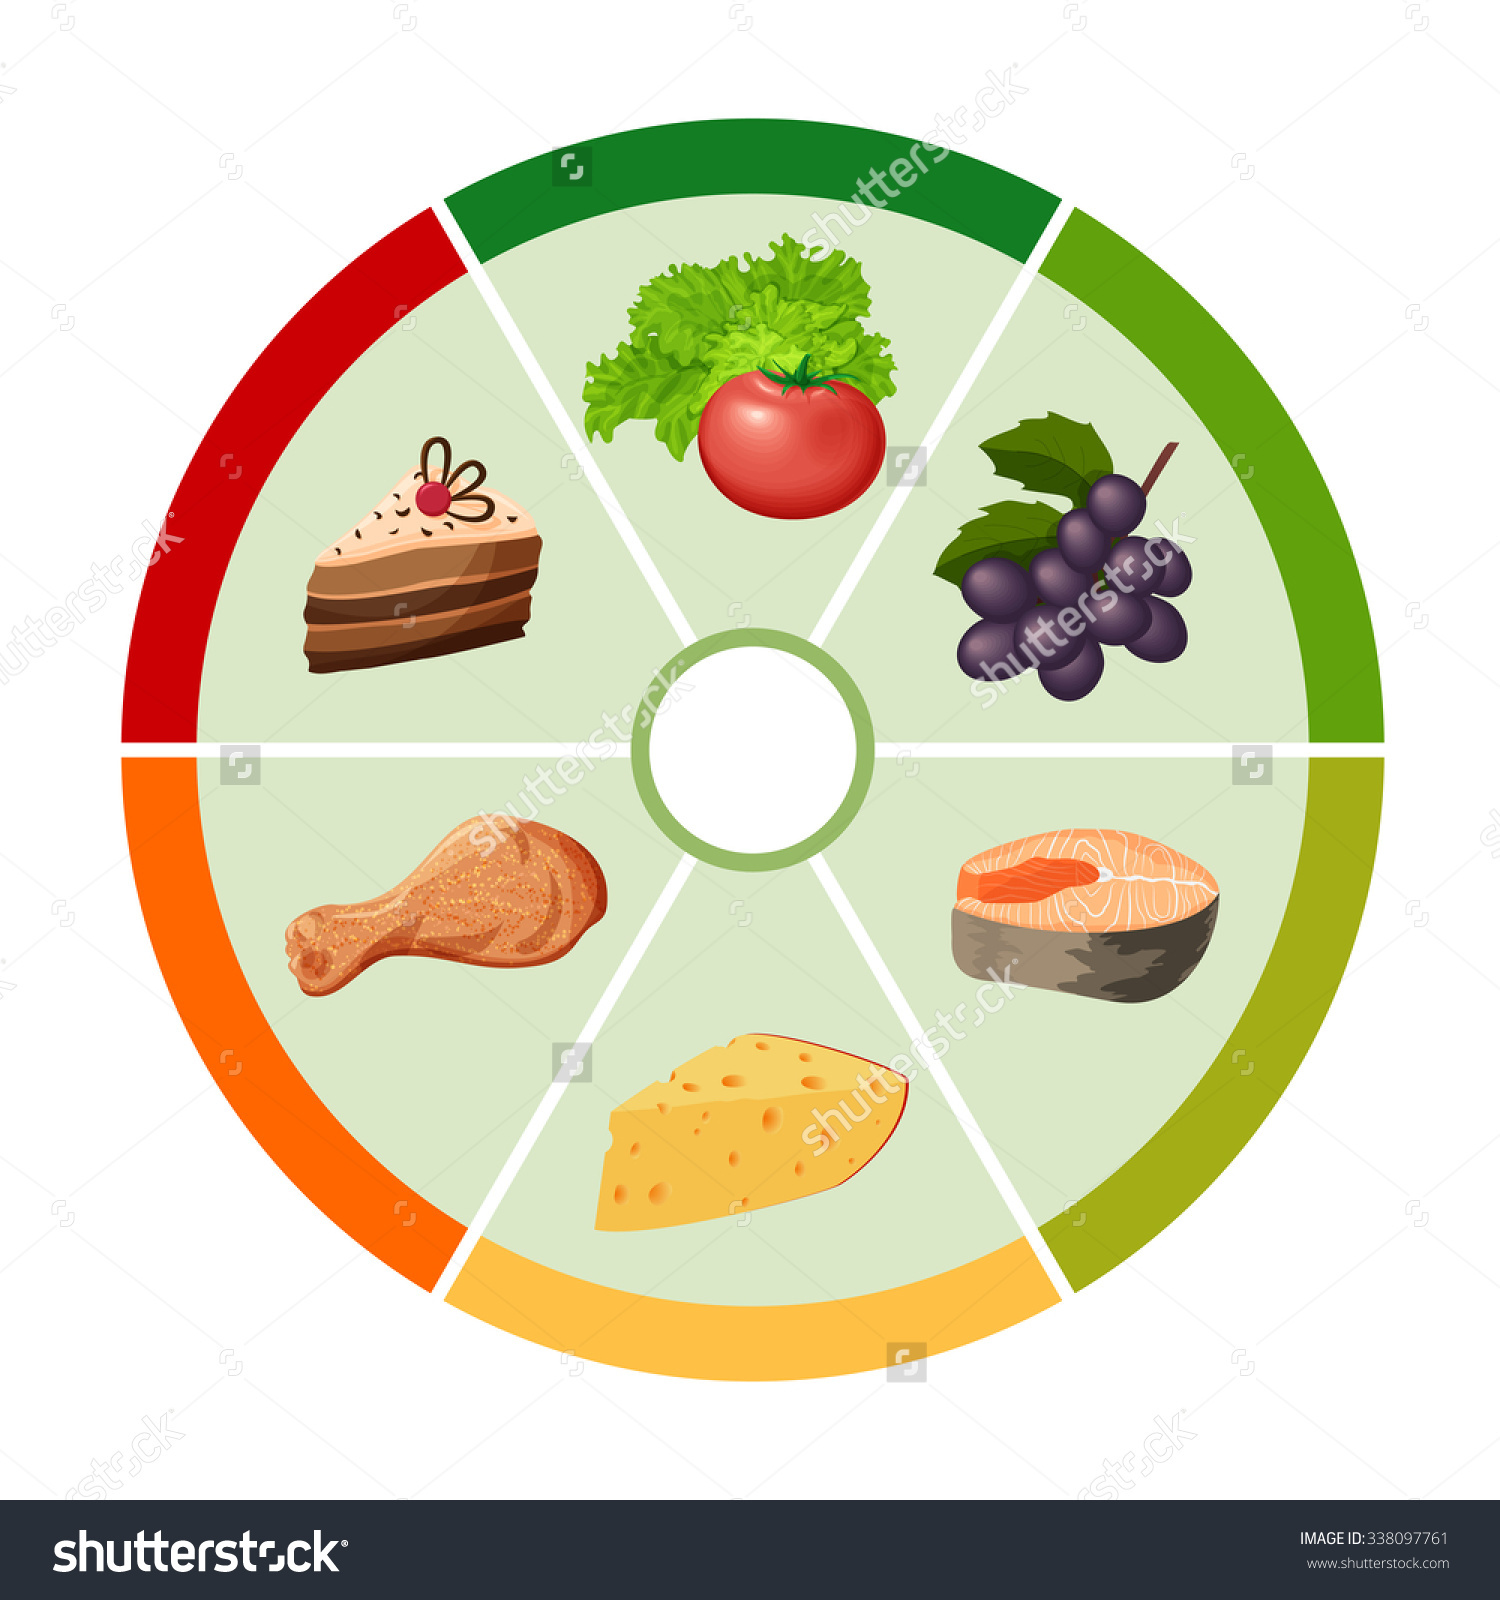 Food Vector Chart Different Types Food Stock Vector 338097761.